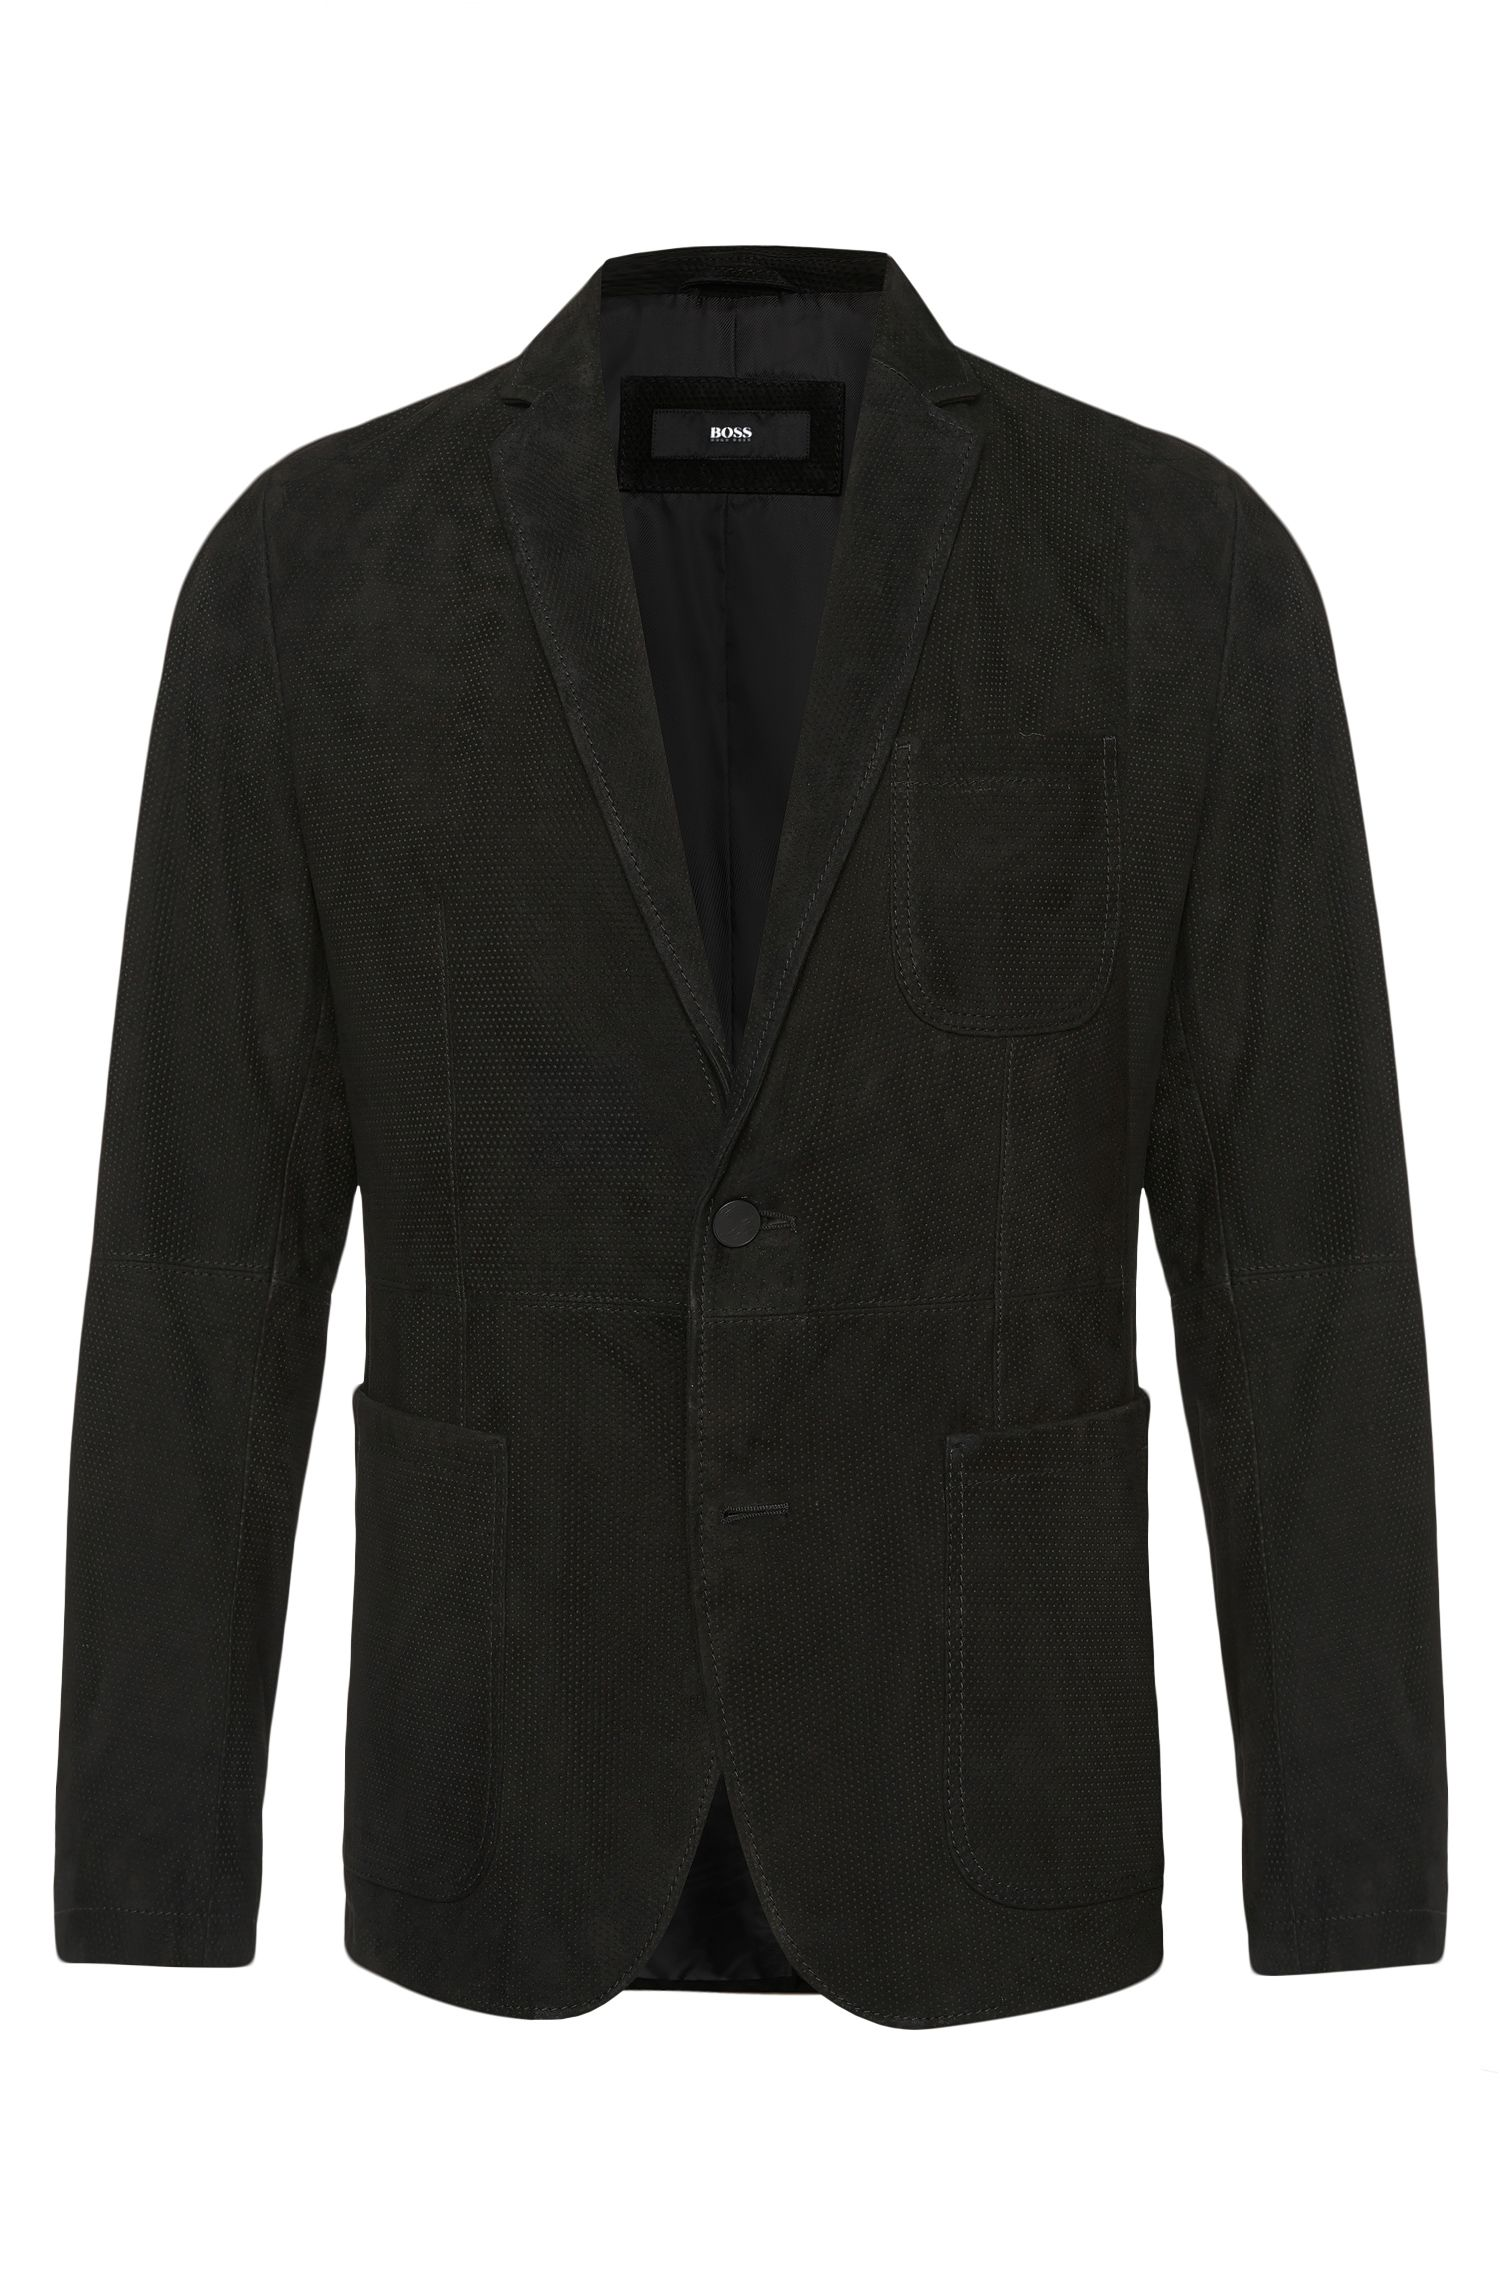 'Nuvins' | Regular Fit, Suede Leather Textured Sport Coat